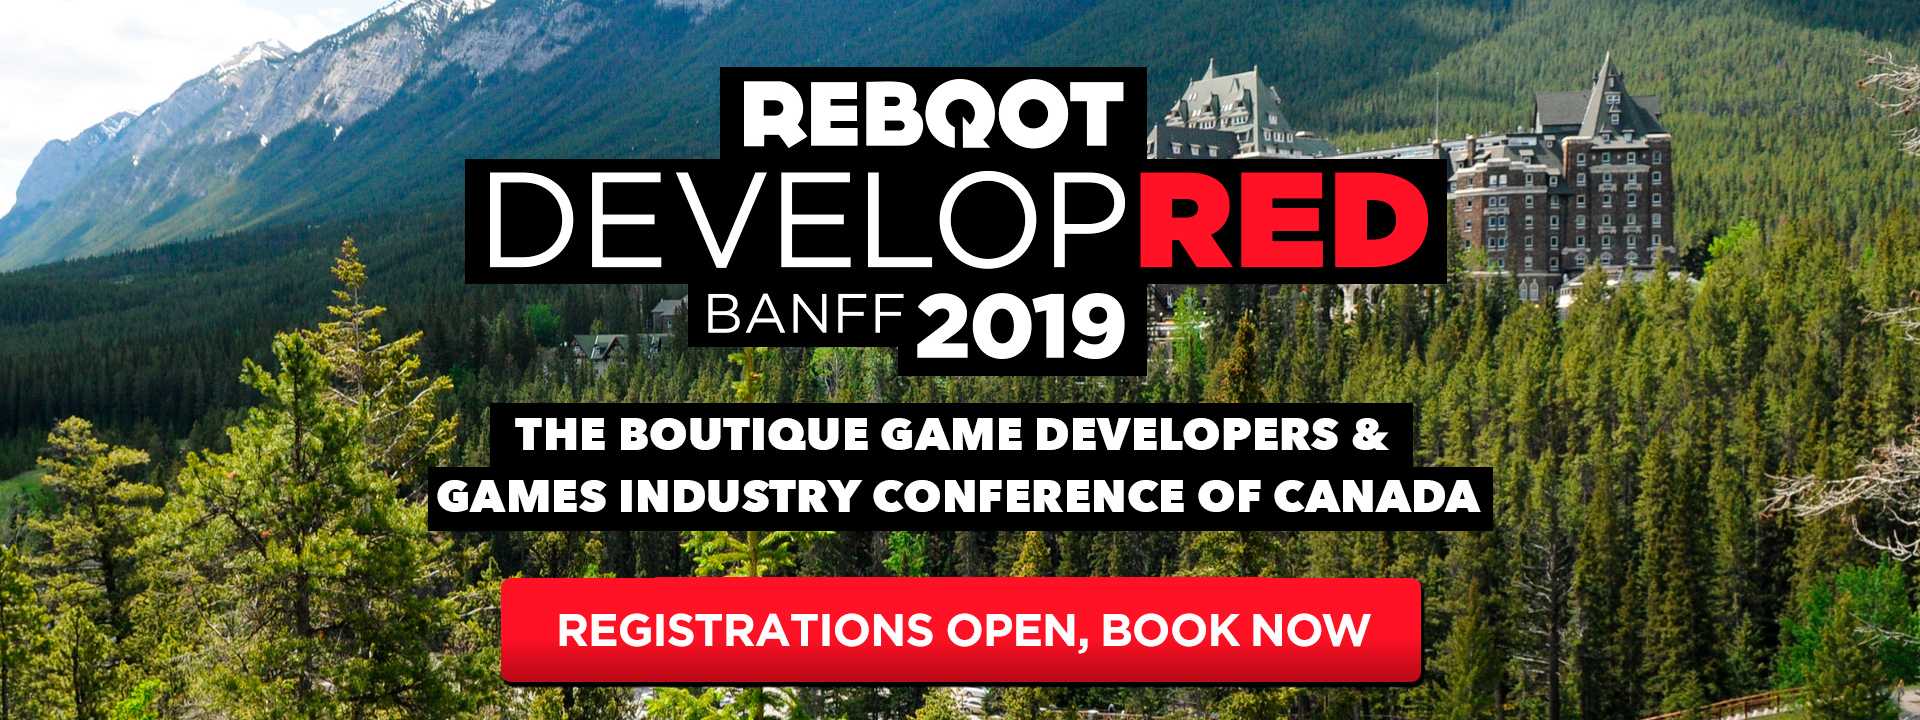 Reboot Develop Red